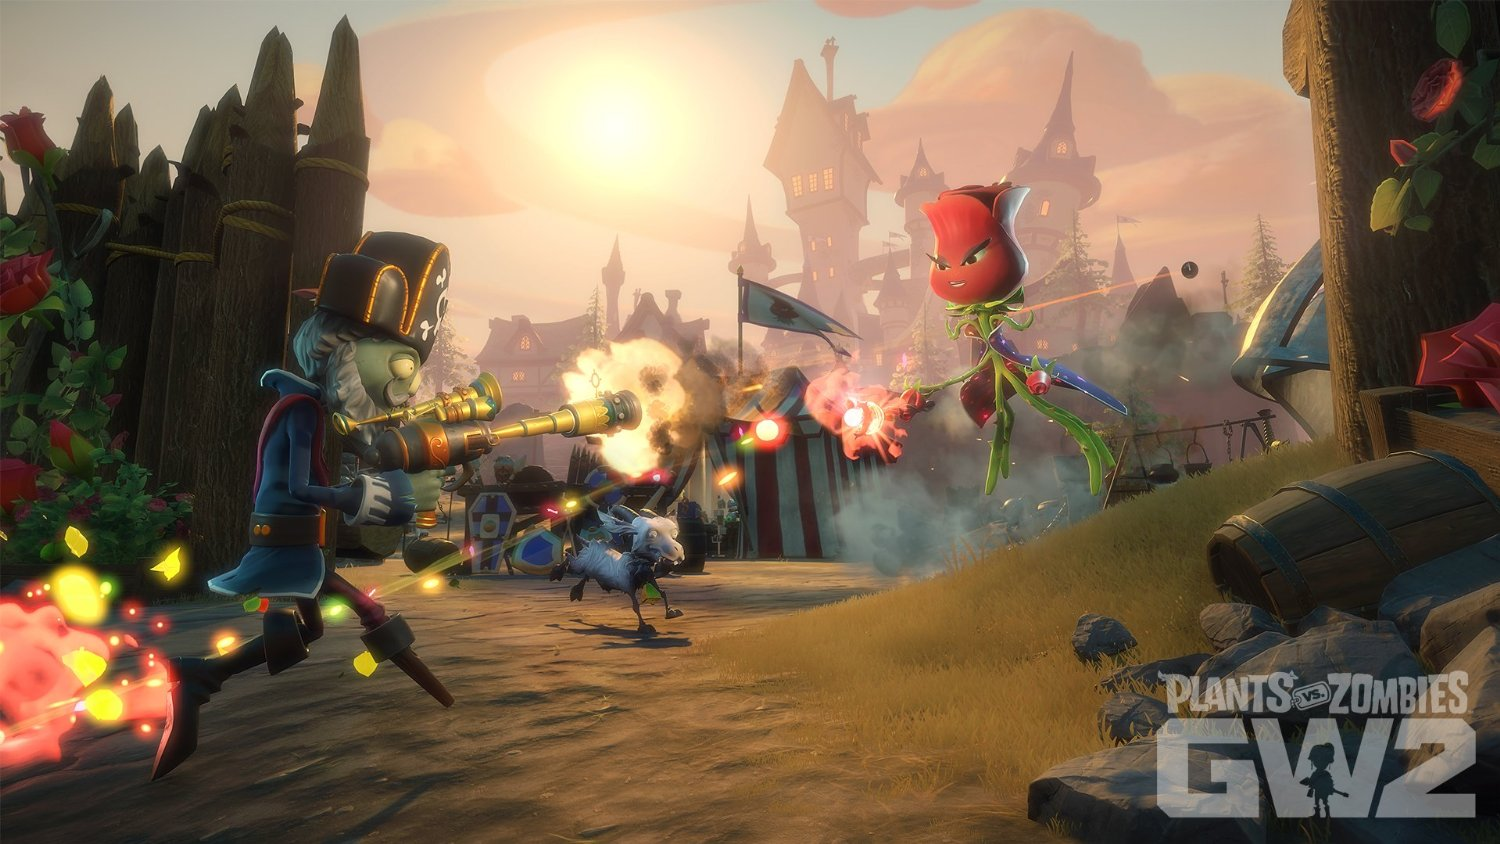 Geek review plants vs zombies garden warfare 2 geek - Free plants vs zombies garden warfare ...